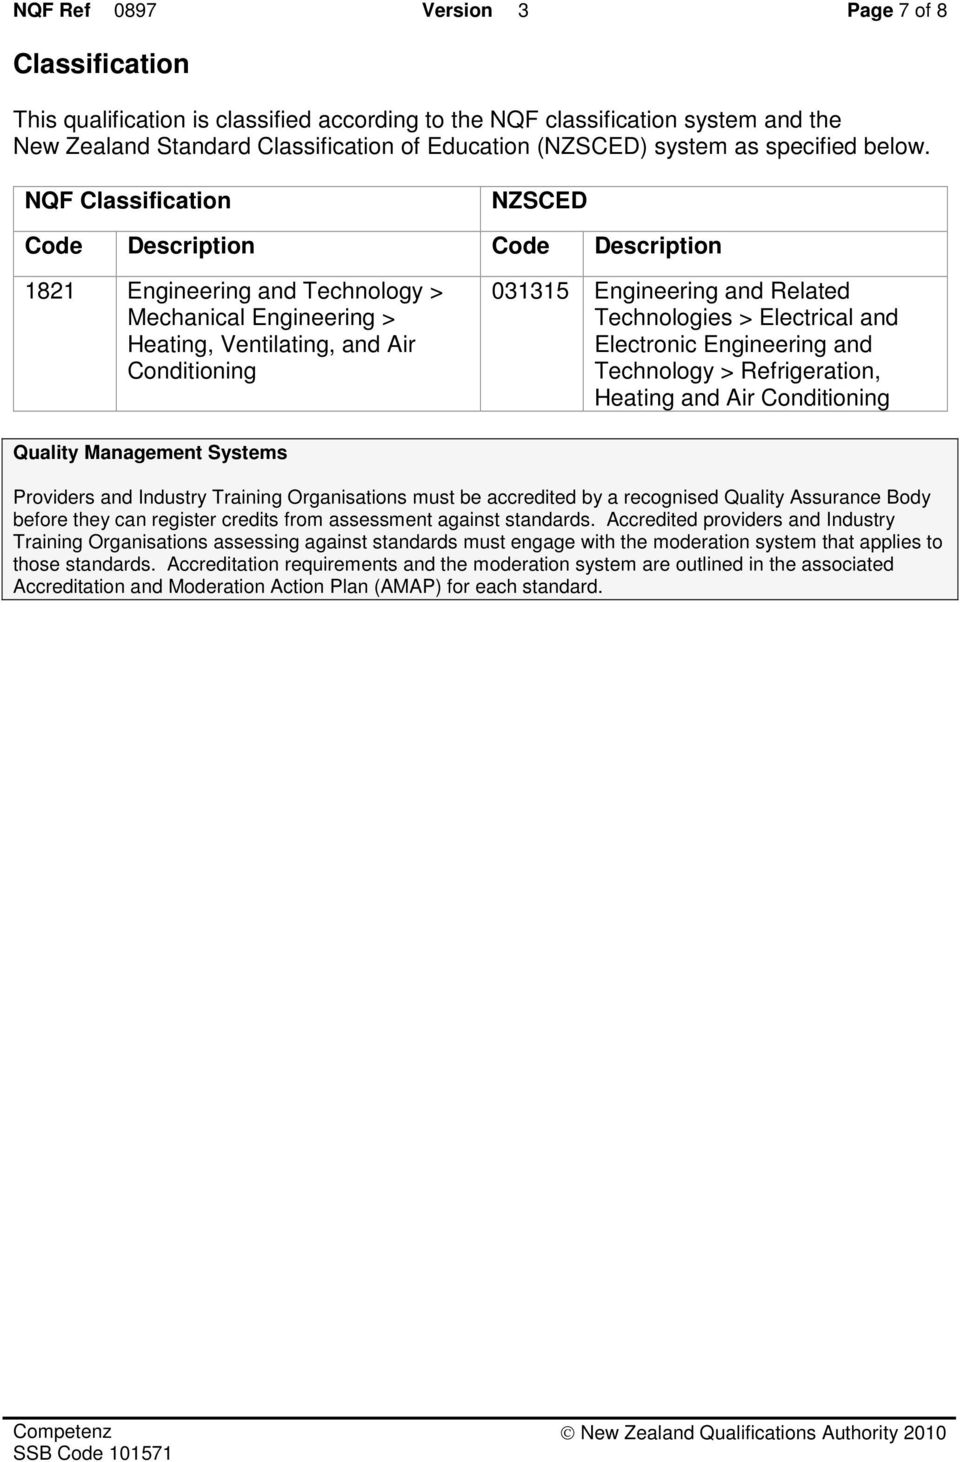 NQF Classification NZSCED Code Description Code Description 1821 Engineering and Technology > Mechanical Engineering > Heating, Ventilating, and Air Conditioning 031315 Engineering and Related